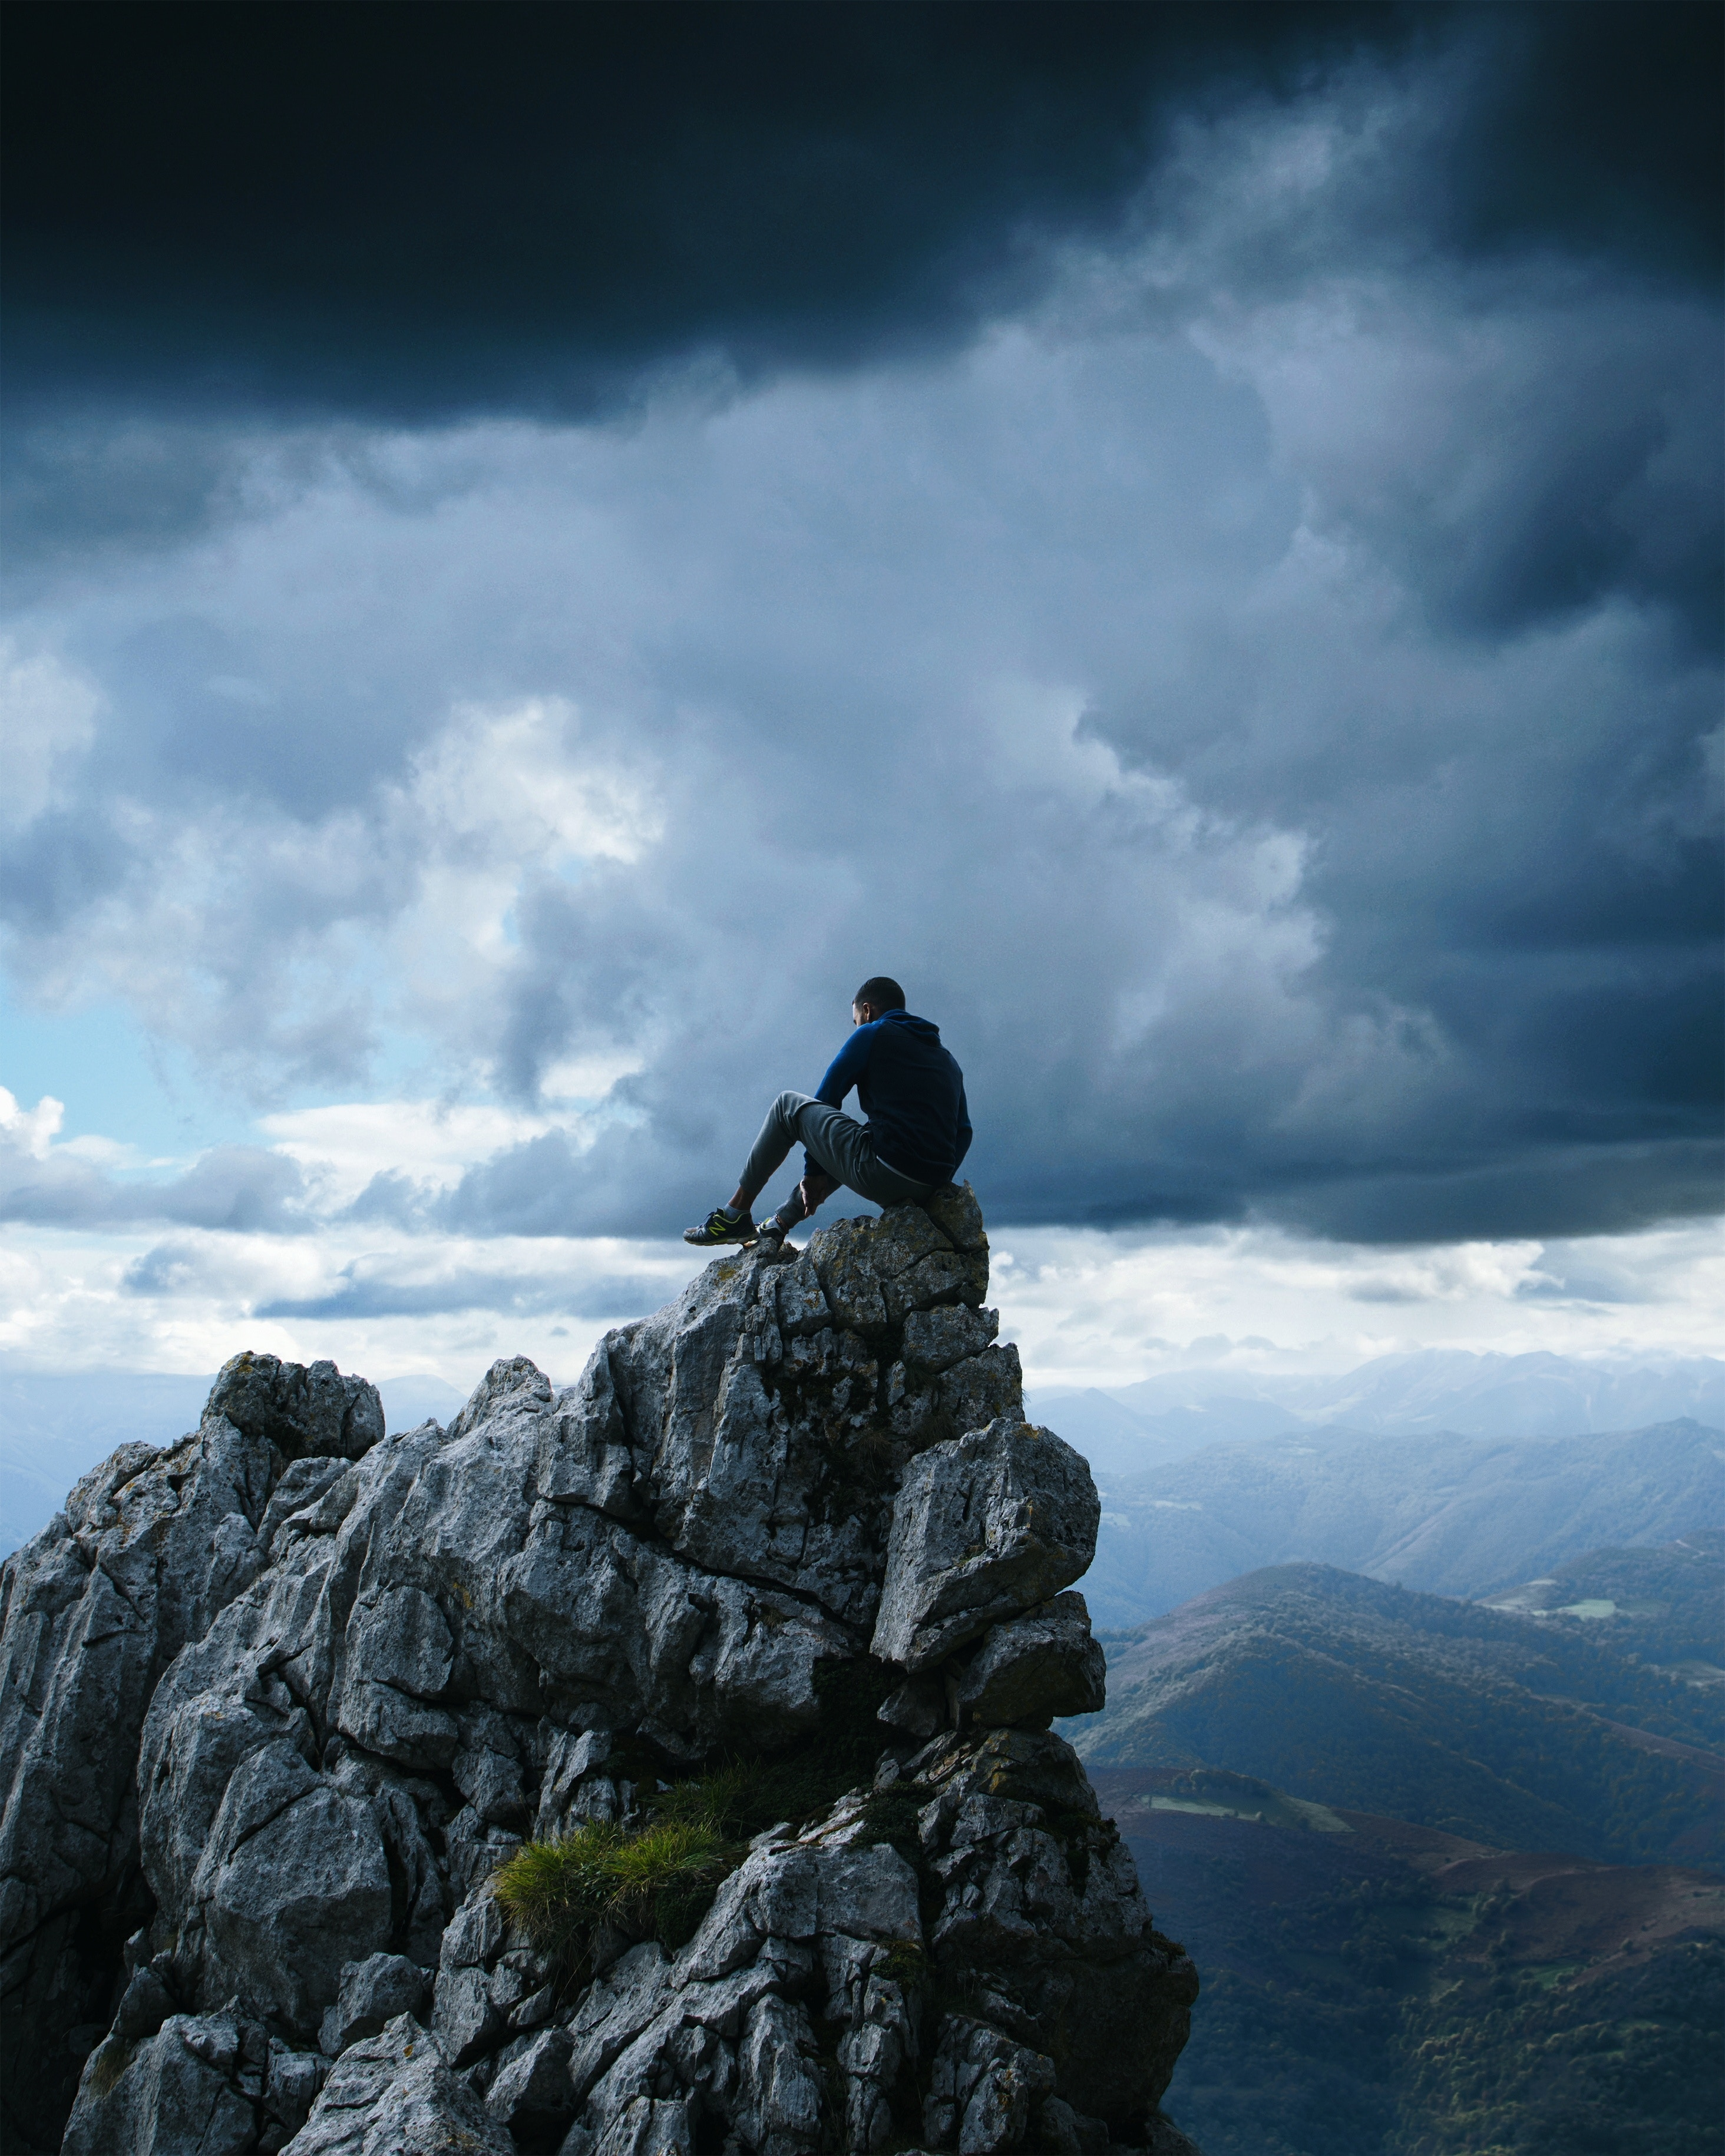 60185 download wallpaper Nature, Rock, Human, Person, Break, Precipice, Height, Freedom, Mountains screensavers and pictures for free